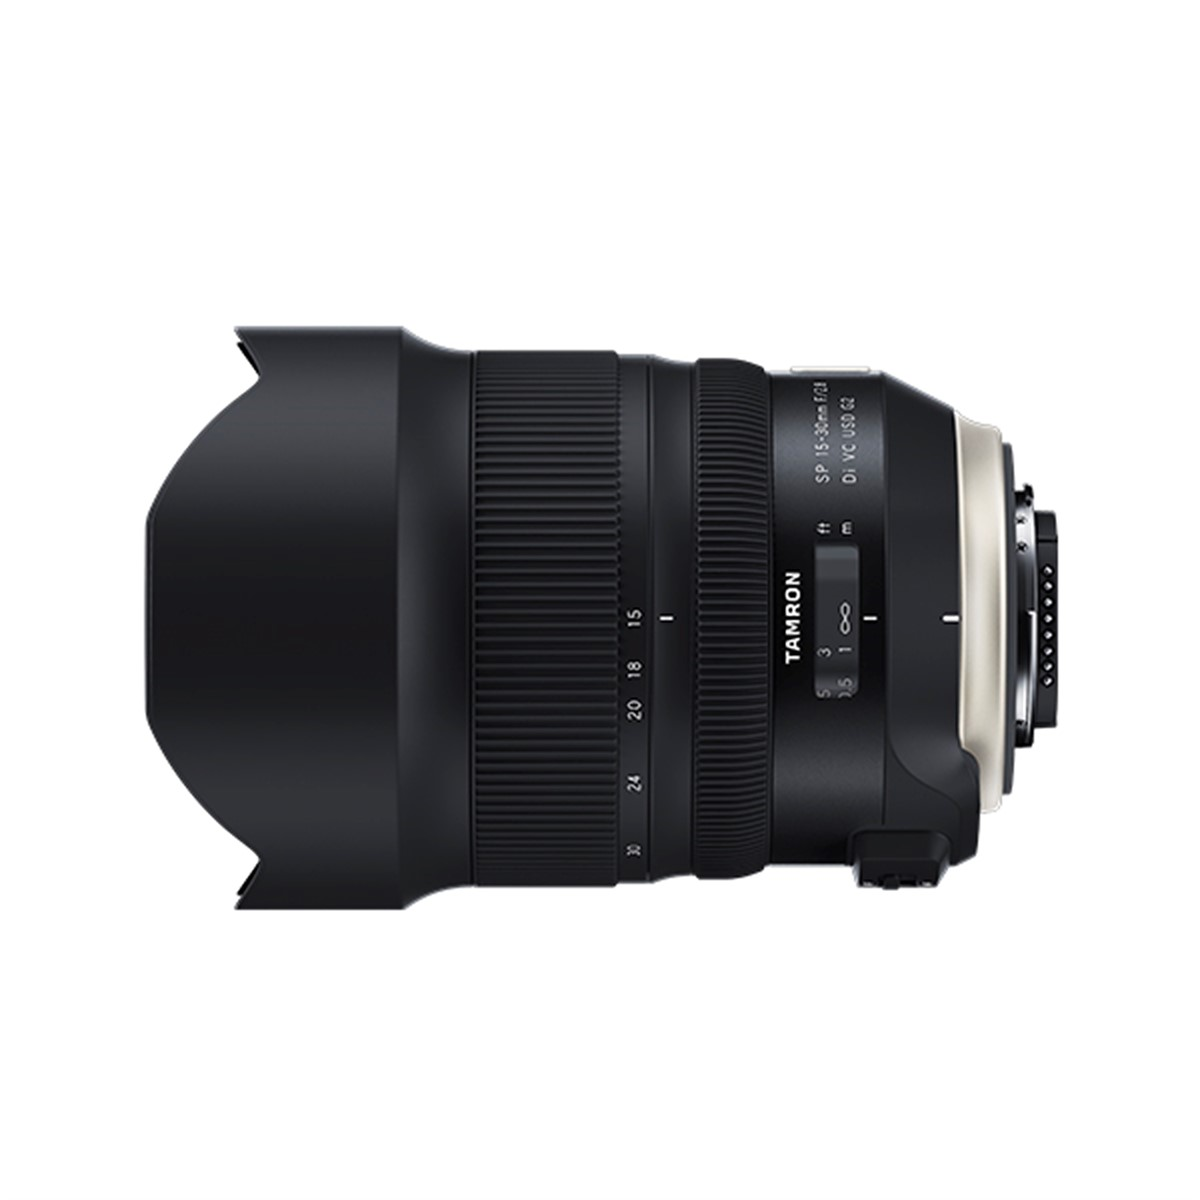 Tamron confirms compatibility with Nikon Z6 for six of its Di, Di II